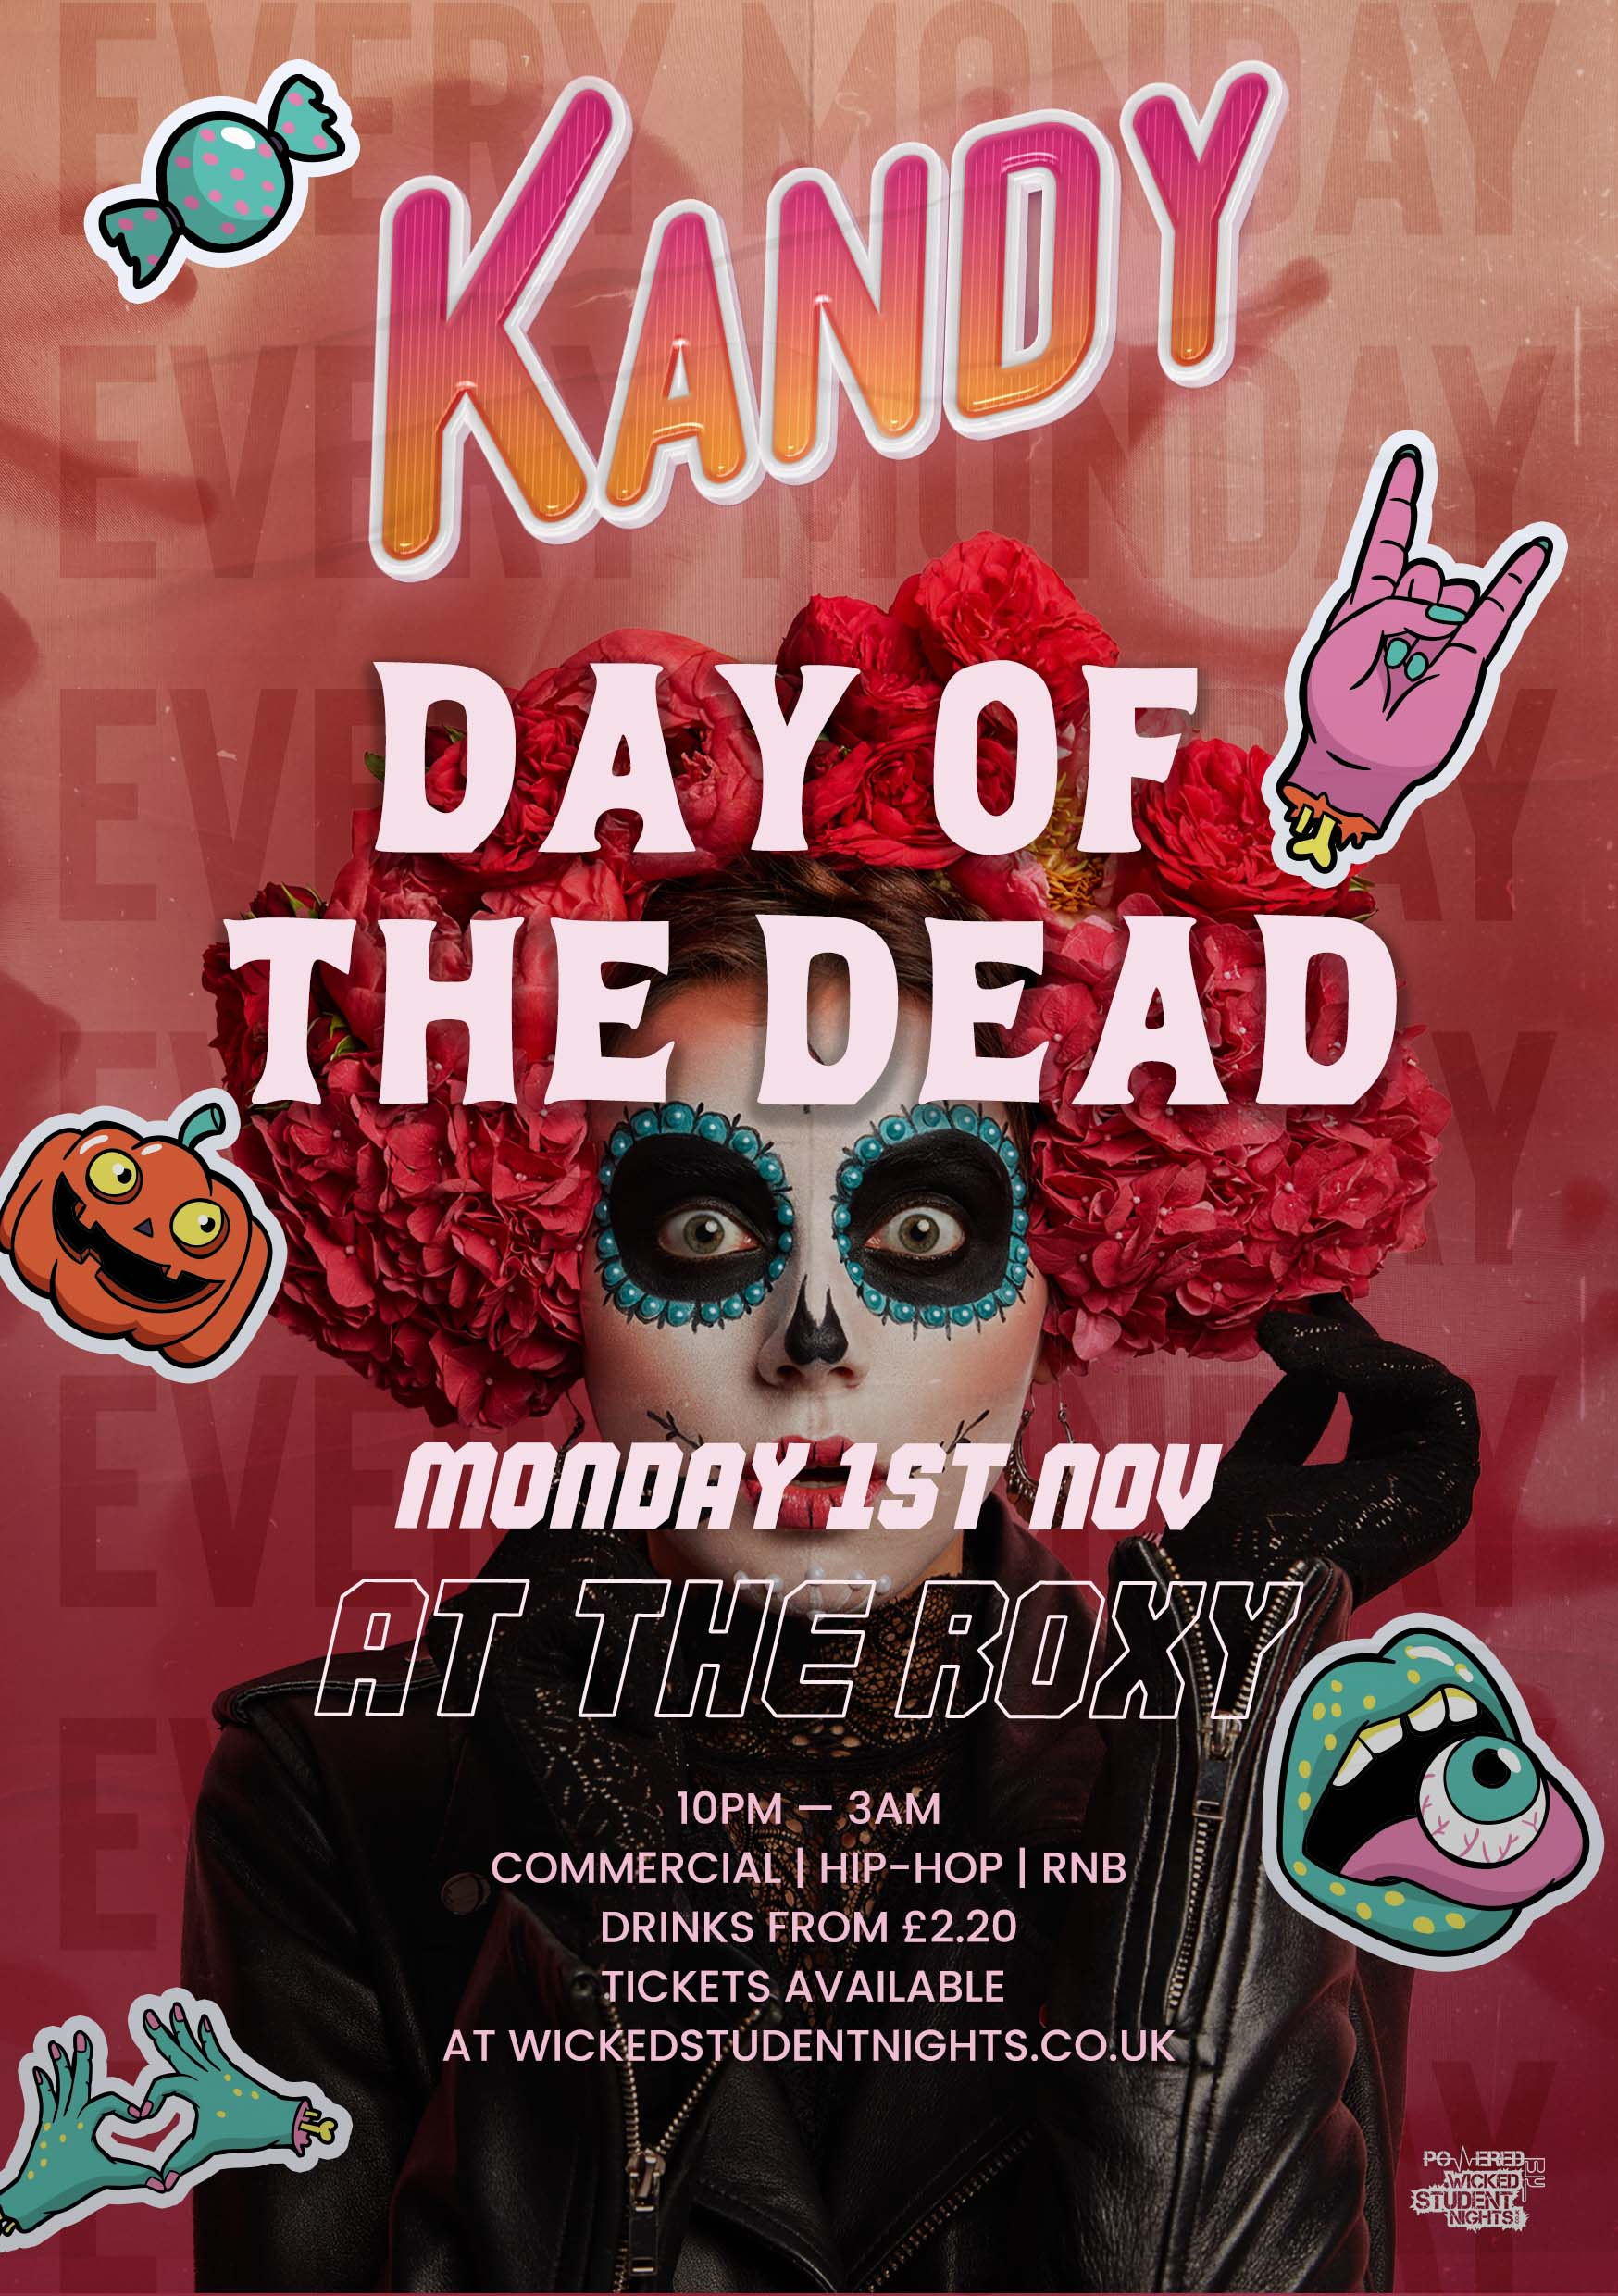 KANDY: DAY OF THE DEAD - HALLOWEEN SPECIAL (£2.20 DRINKS) @ THE ROXY